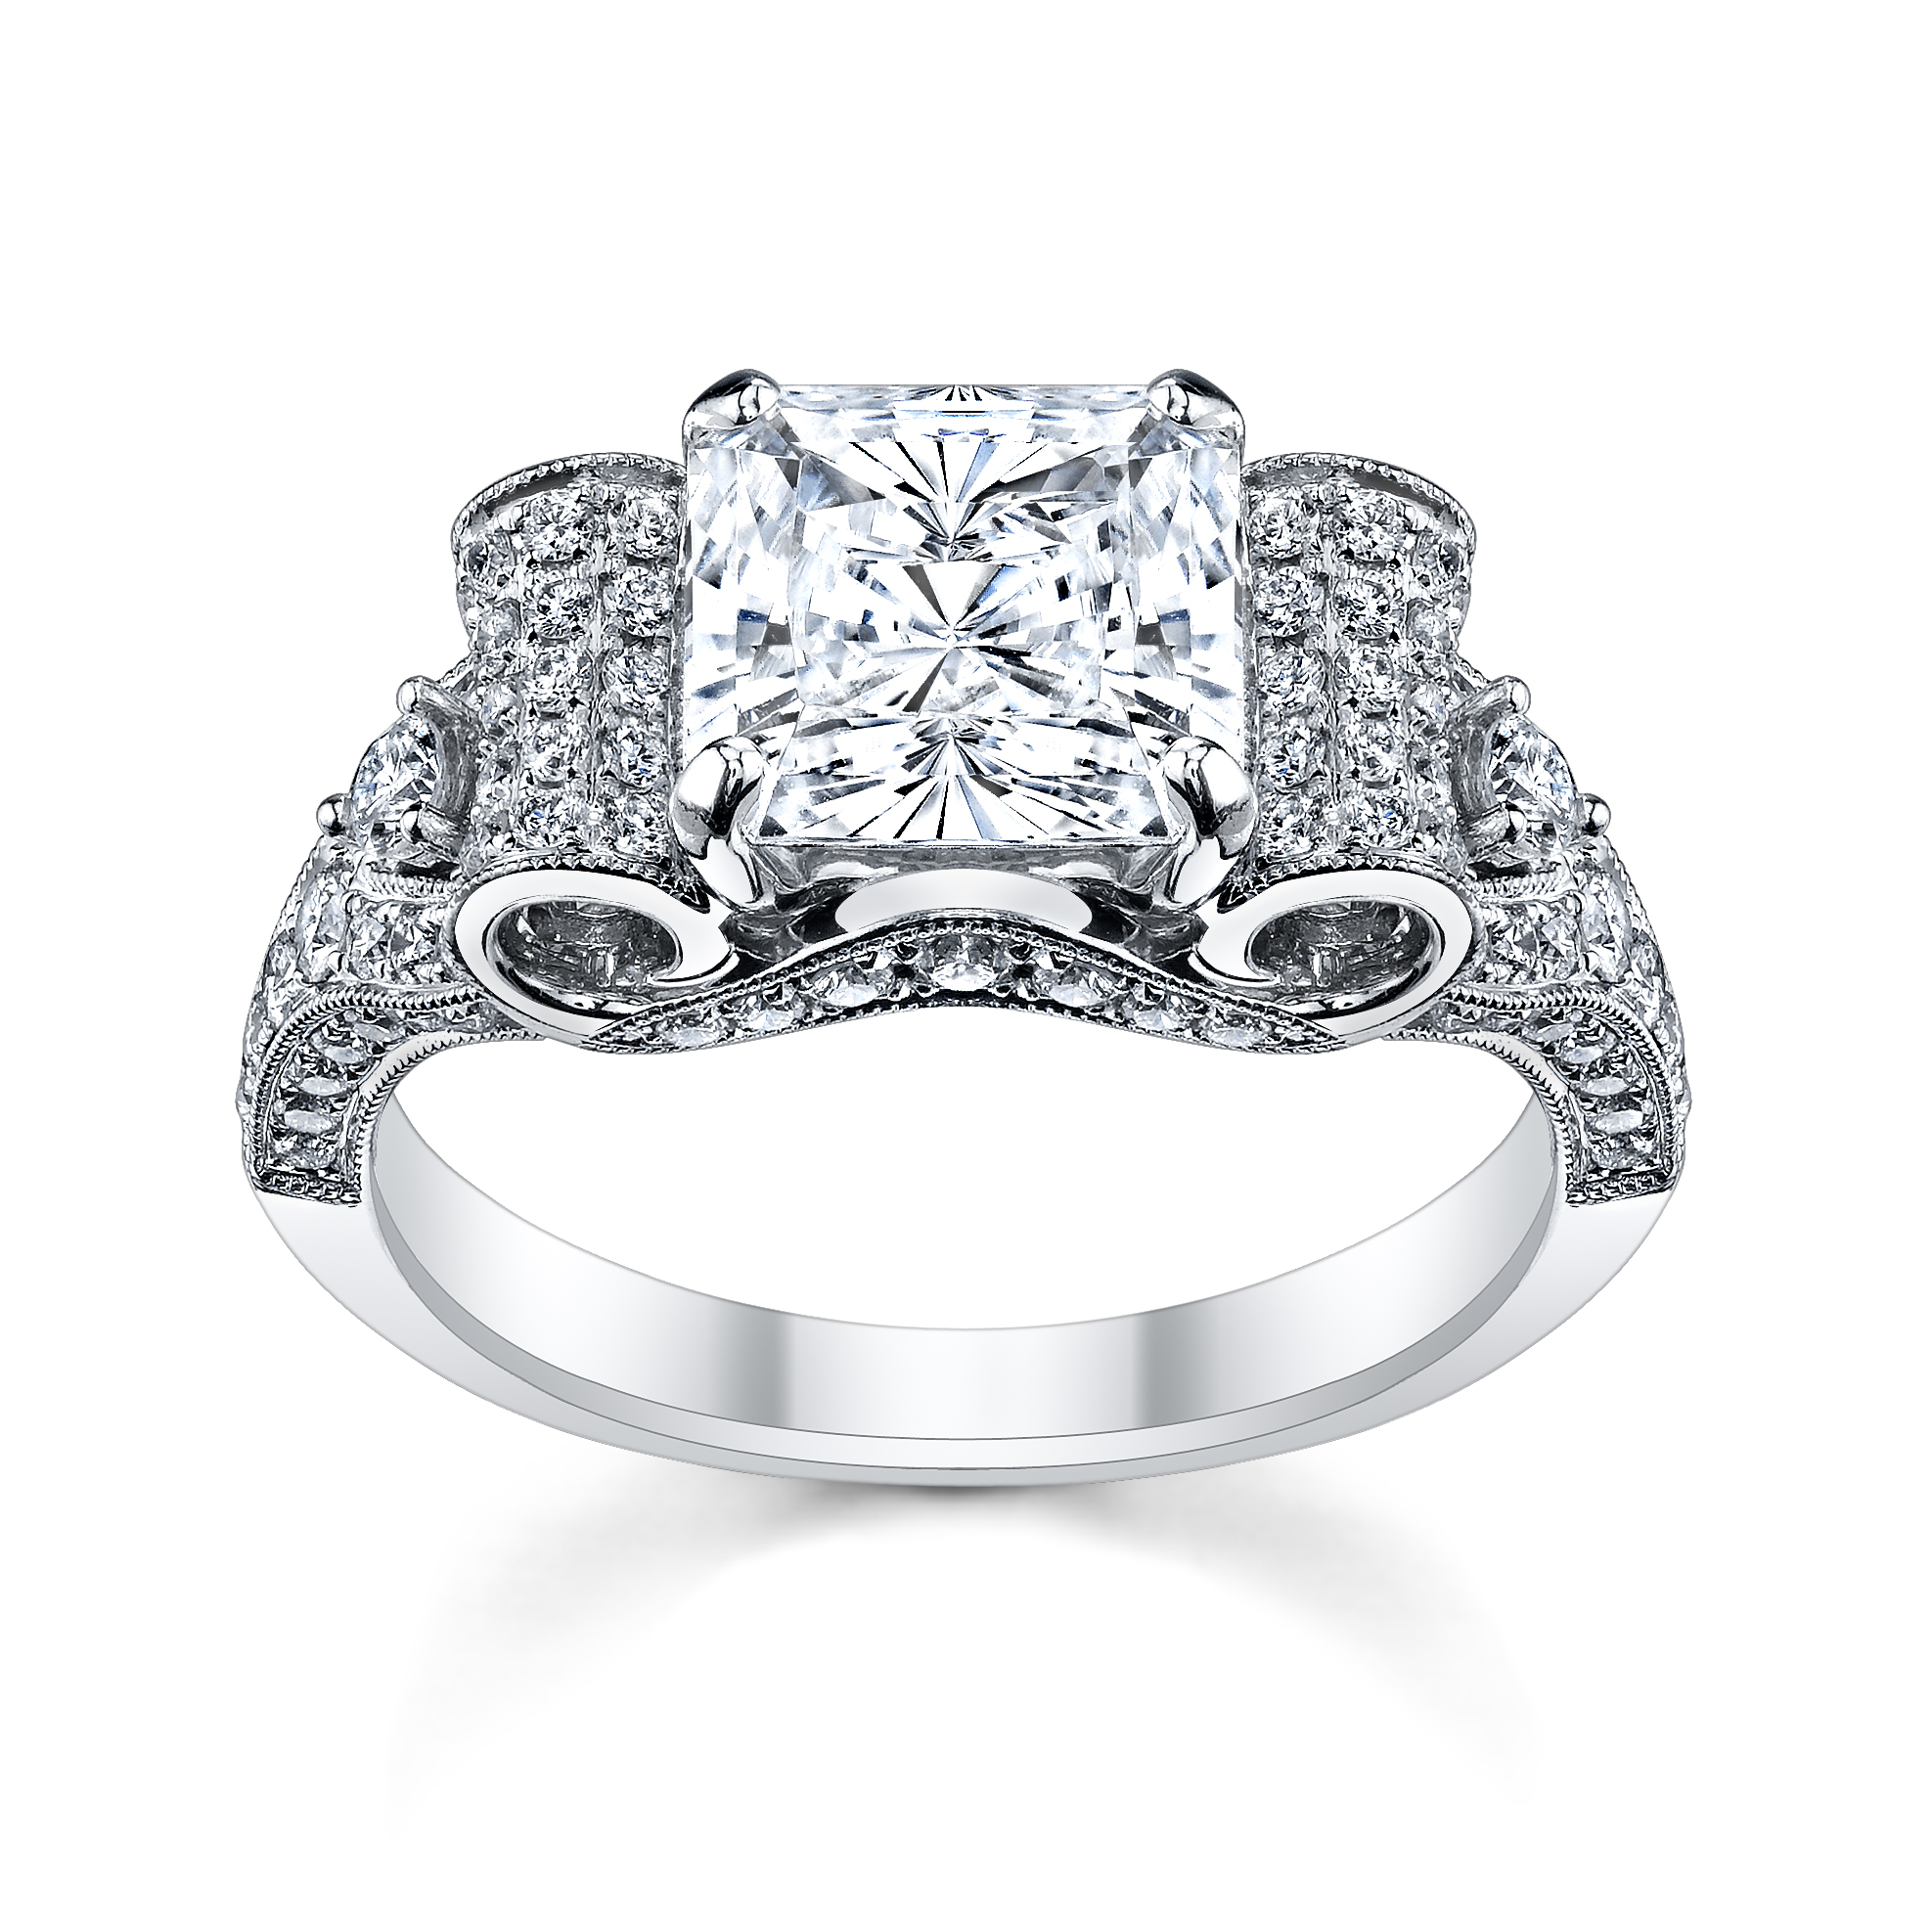 4 perfect heart bow diamond engagement rings for the holidays